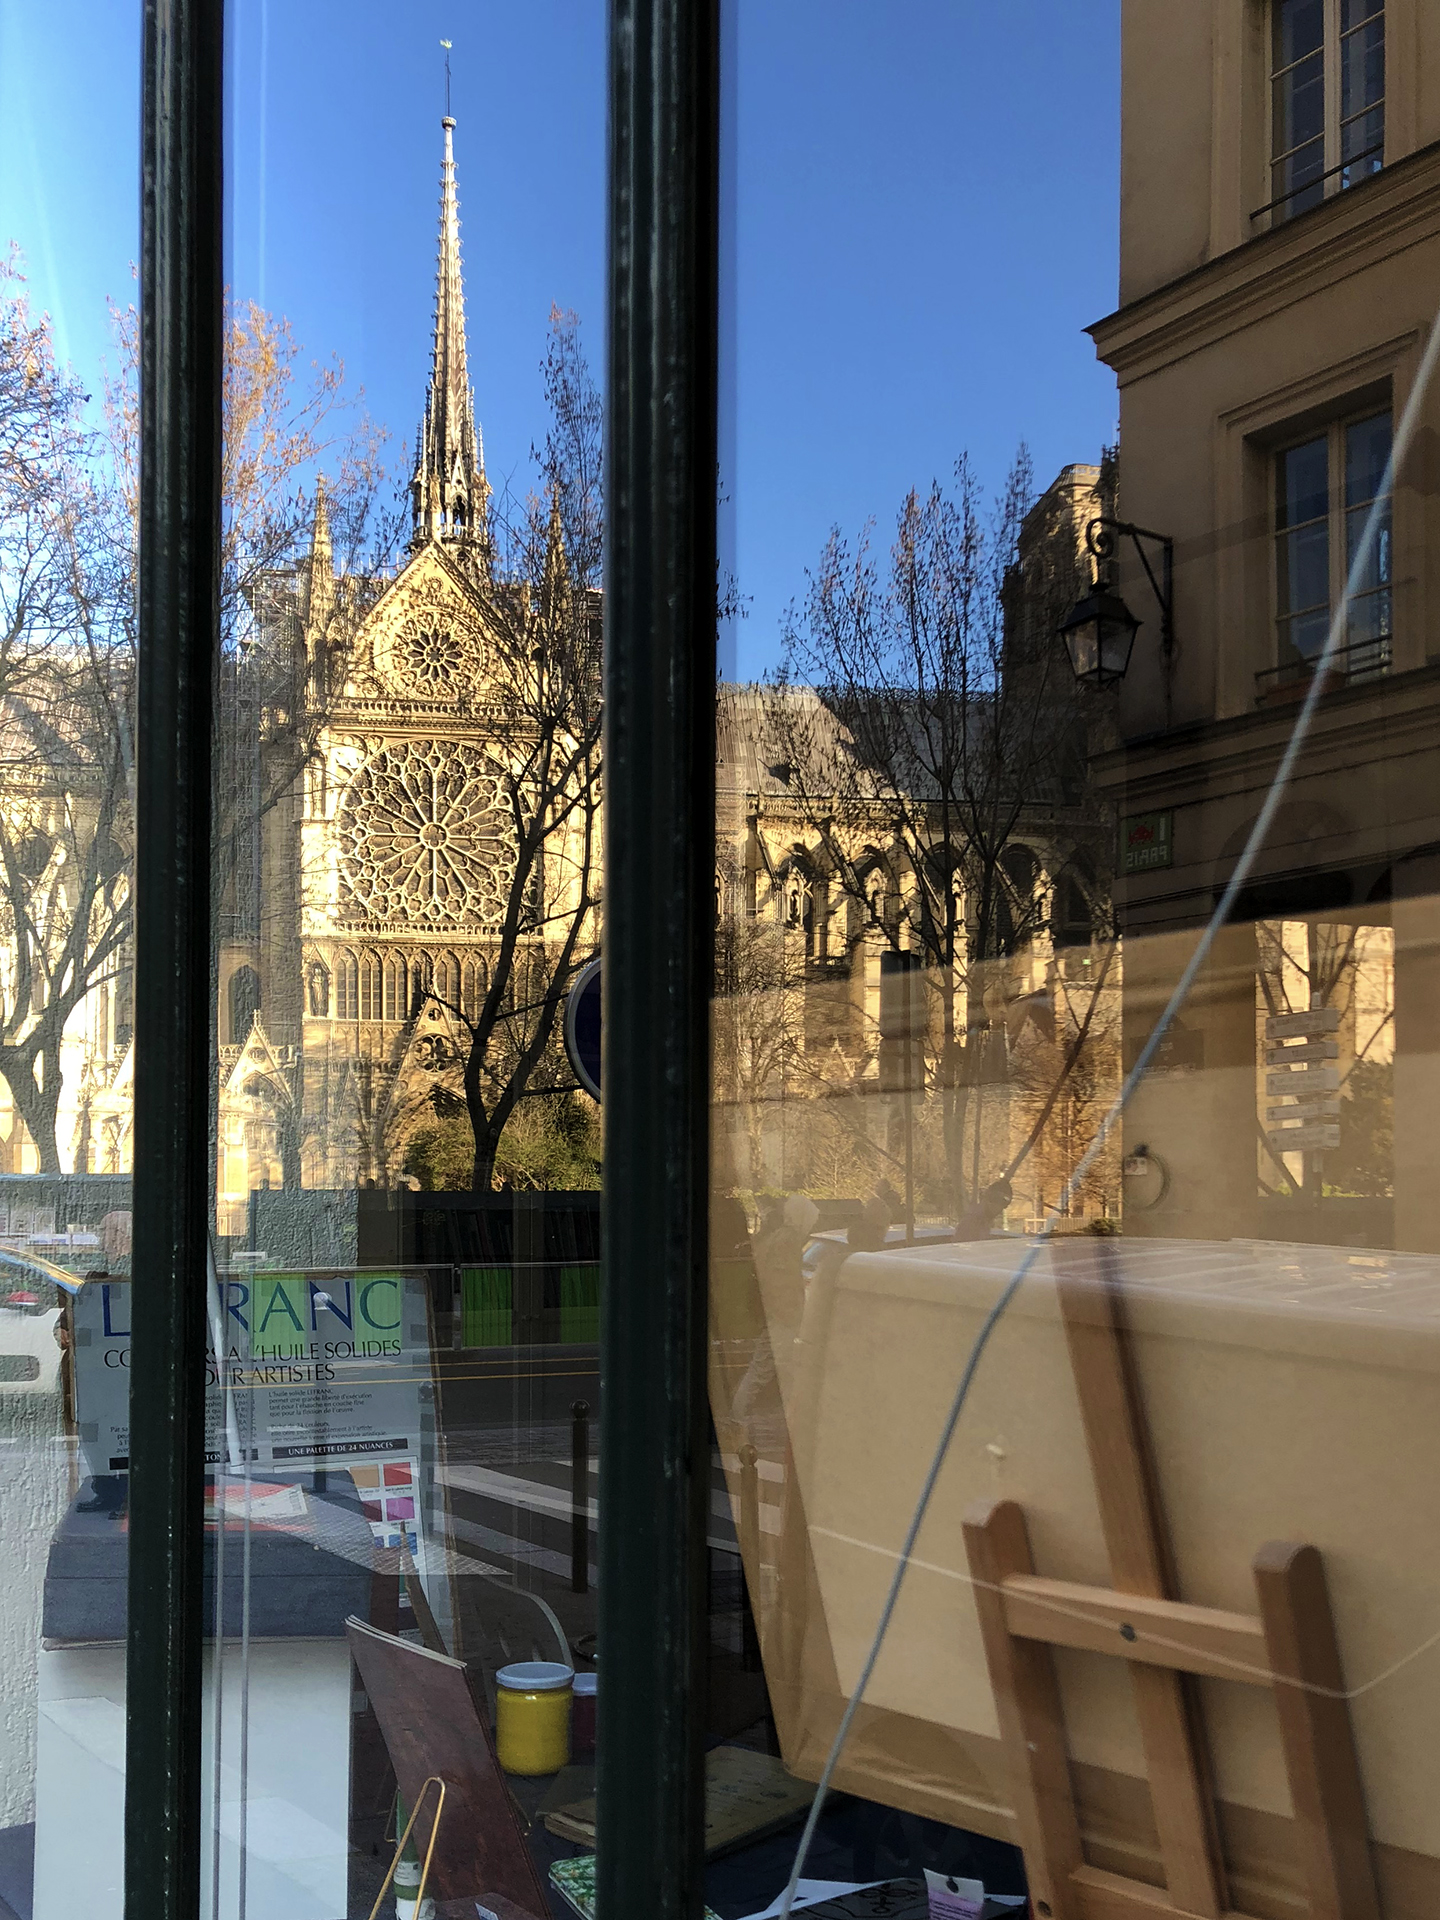 My very last photo of the cathedral. Taken on March 19, 2019. The spire and the South rose reflected in the window of Charbonnel, a fine art supply shop on quai de Montebello.